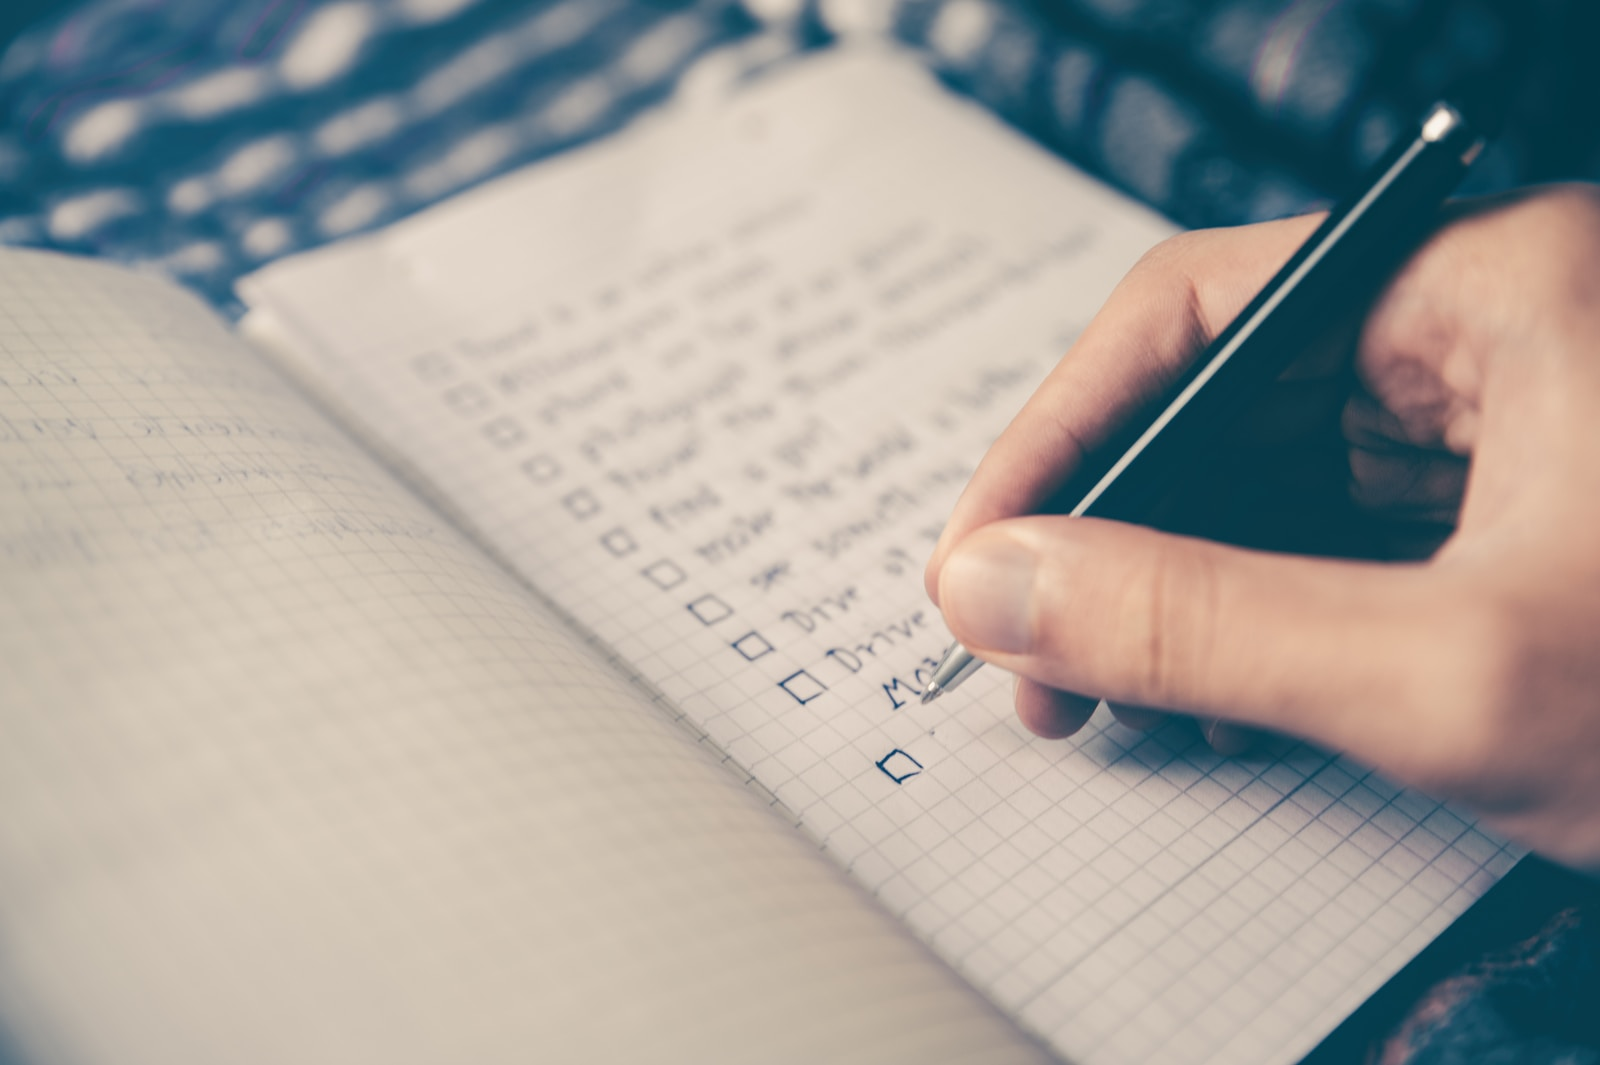 Getting Things Done for Beginners